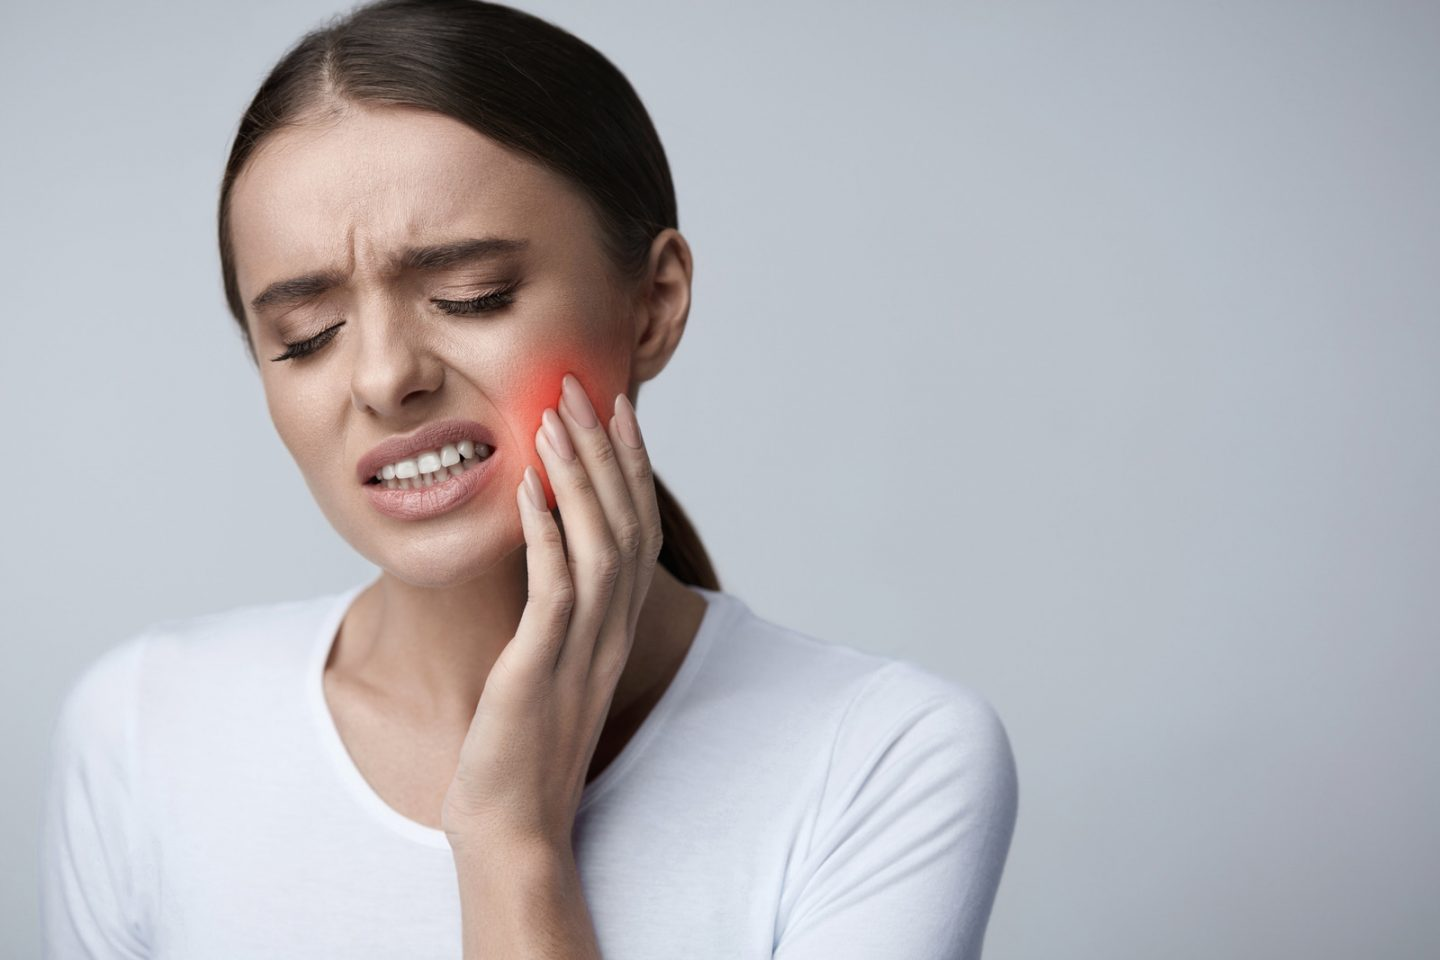 Tooth Pain And Dentistry. Beautiful Young Woman Suffering From Terrible Strong Teeth Pain, Touching Cheek With Hand. Female Feeling Painful Toothache. Dental Care And Health Concept. High Resolution